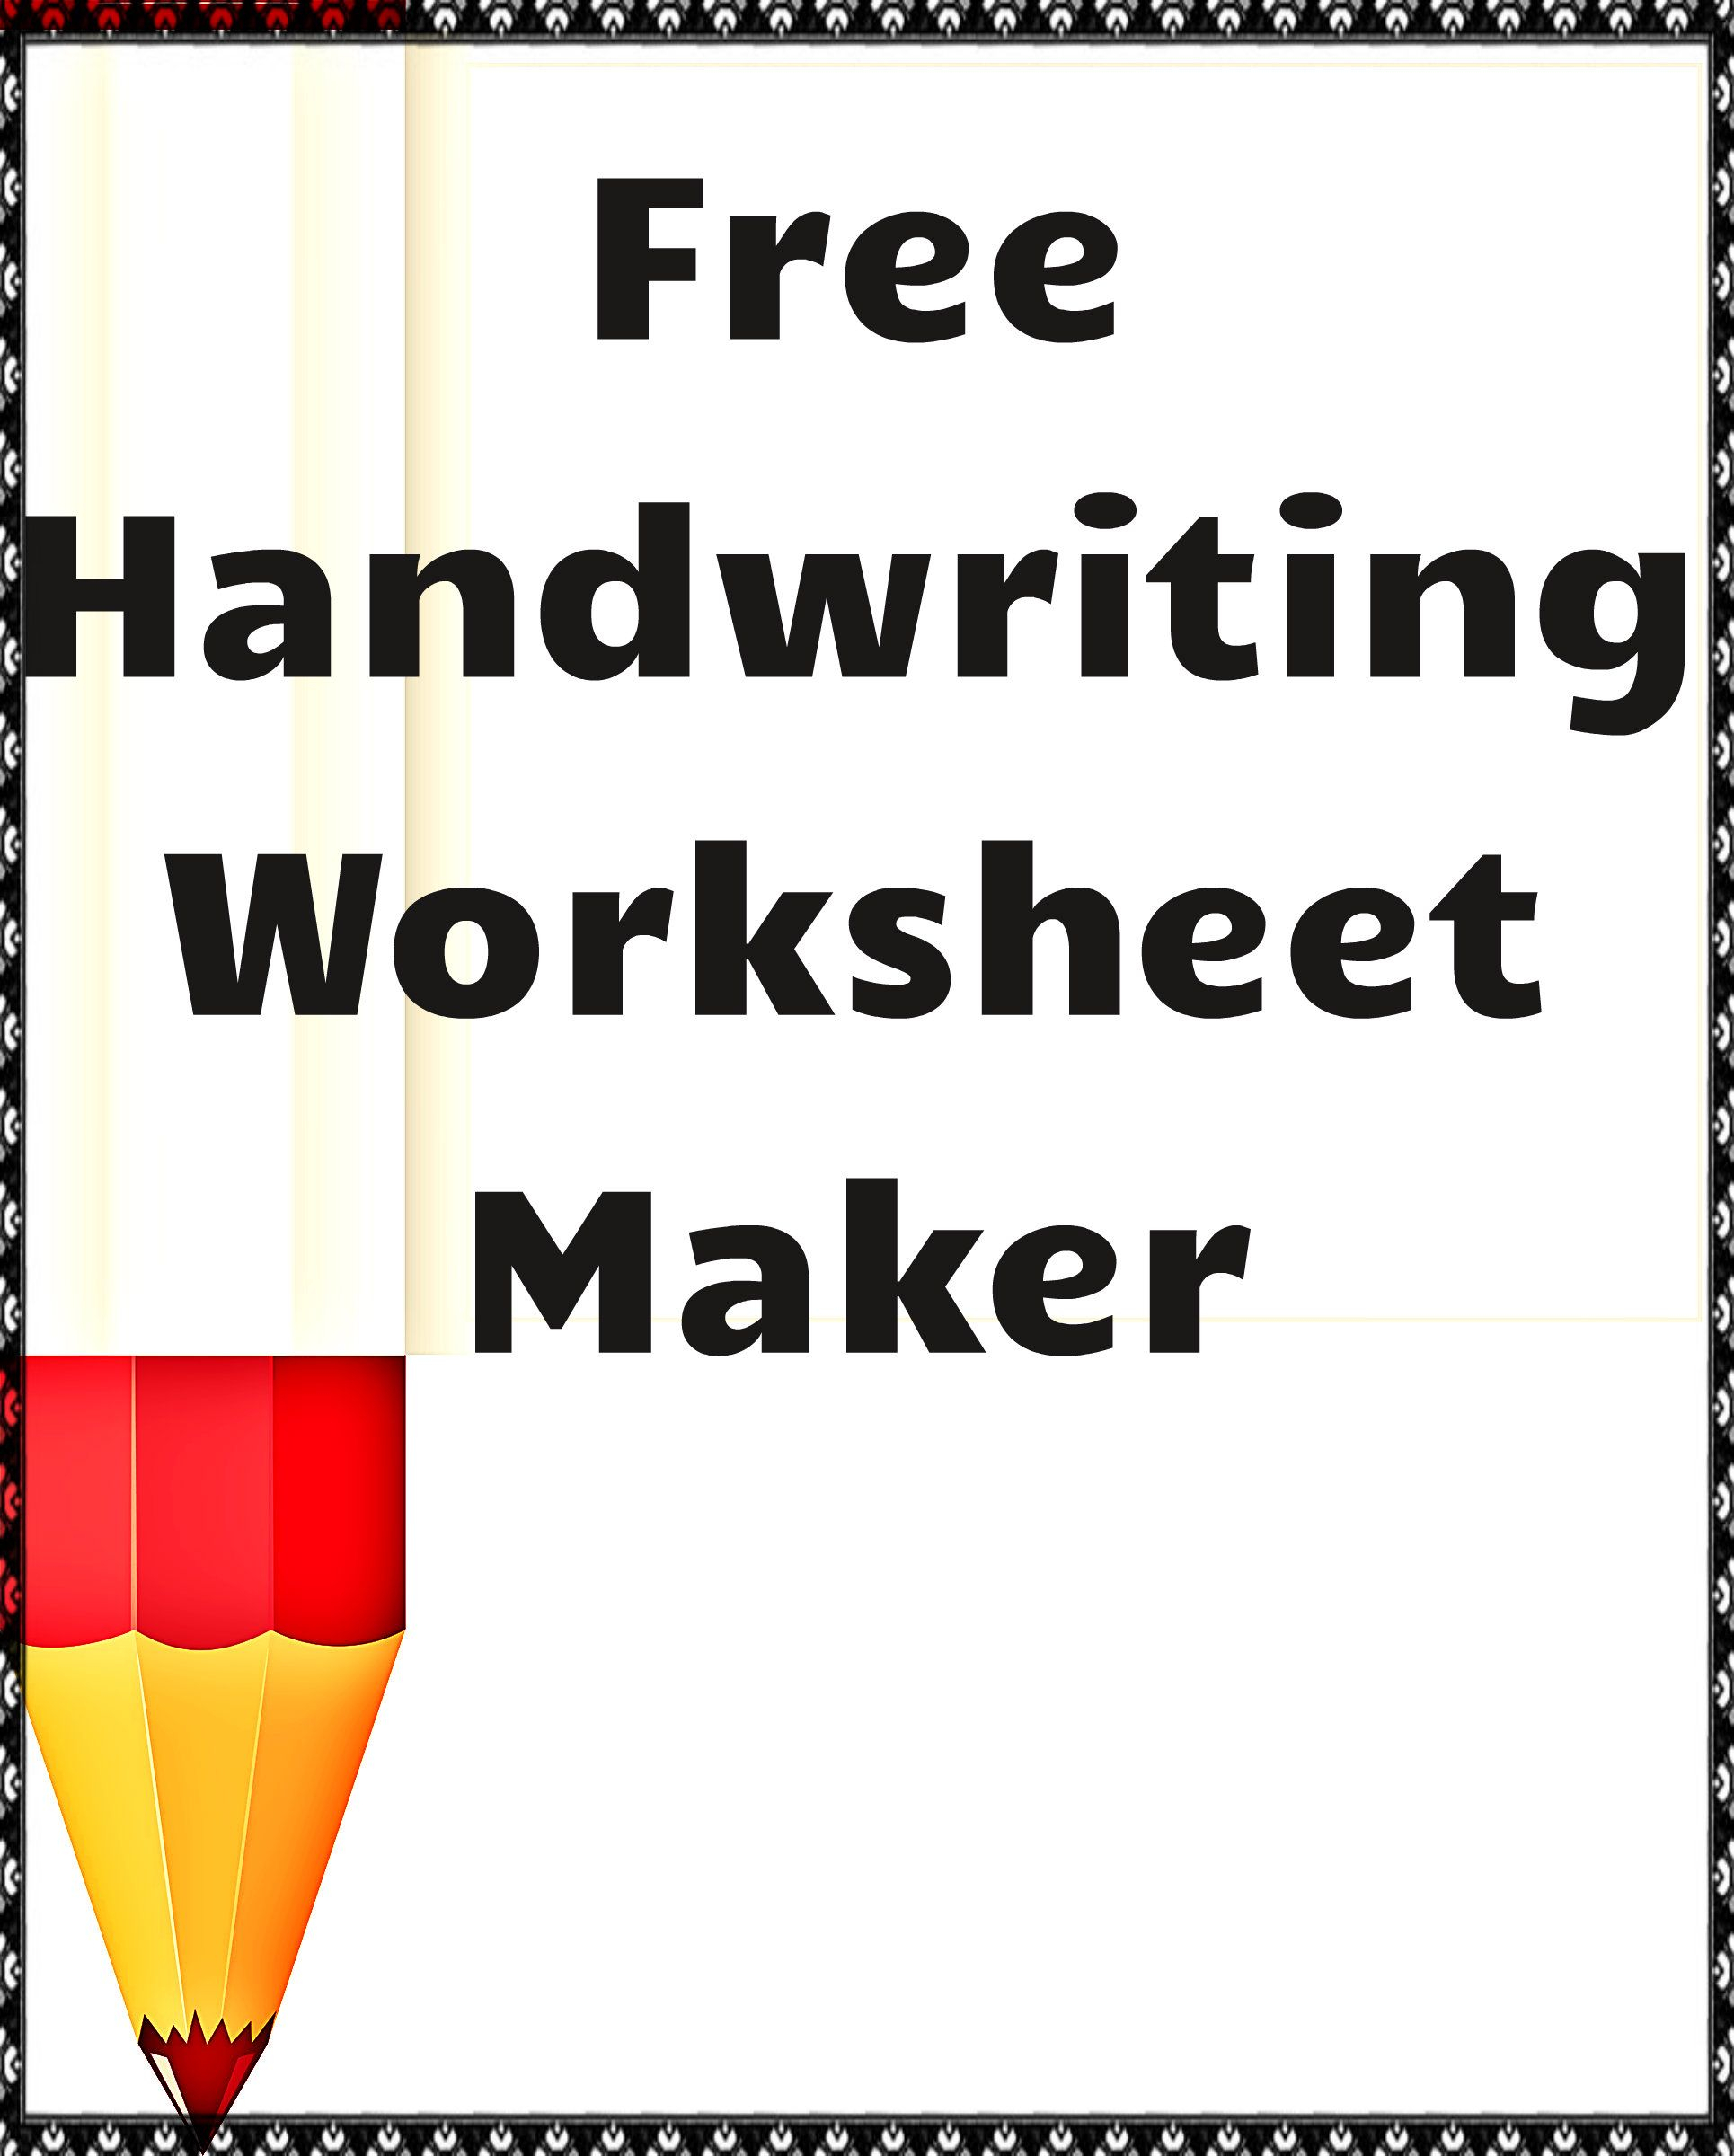 Handwriting Worksheet Maker, Free Handwriting Worksheets throughout Letter Tracing Maker